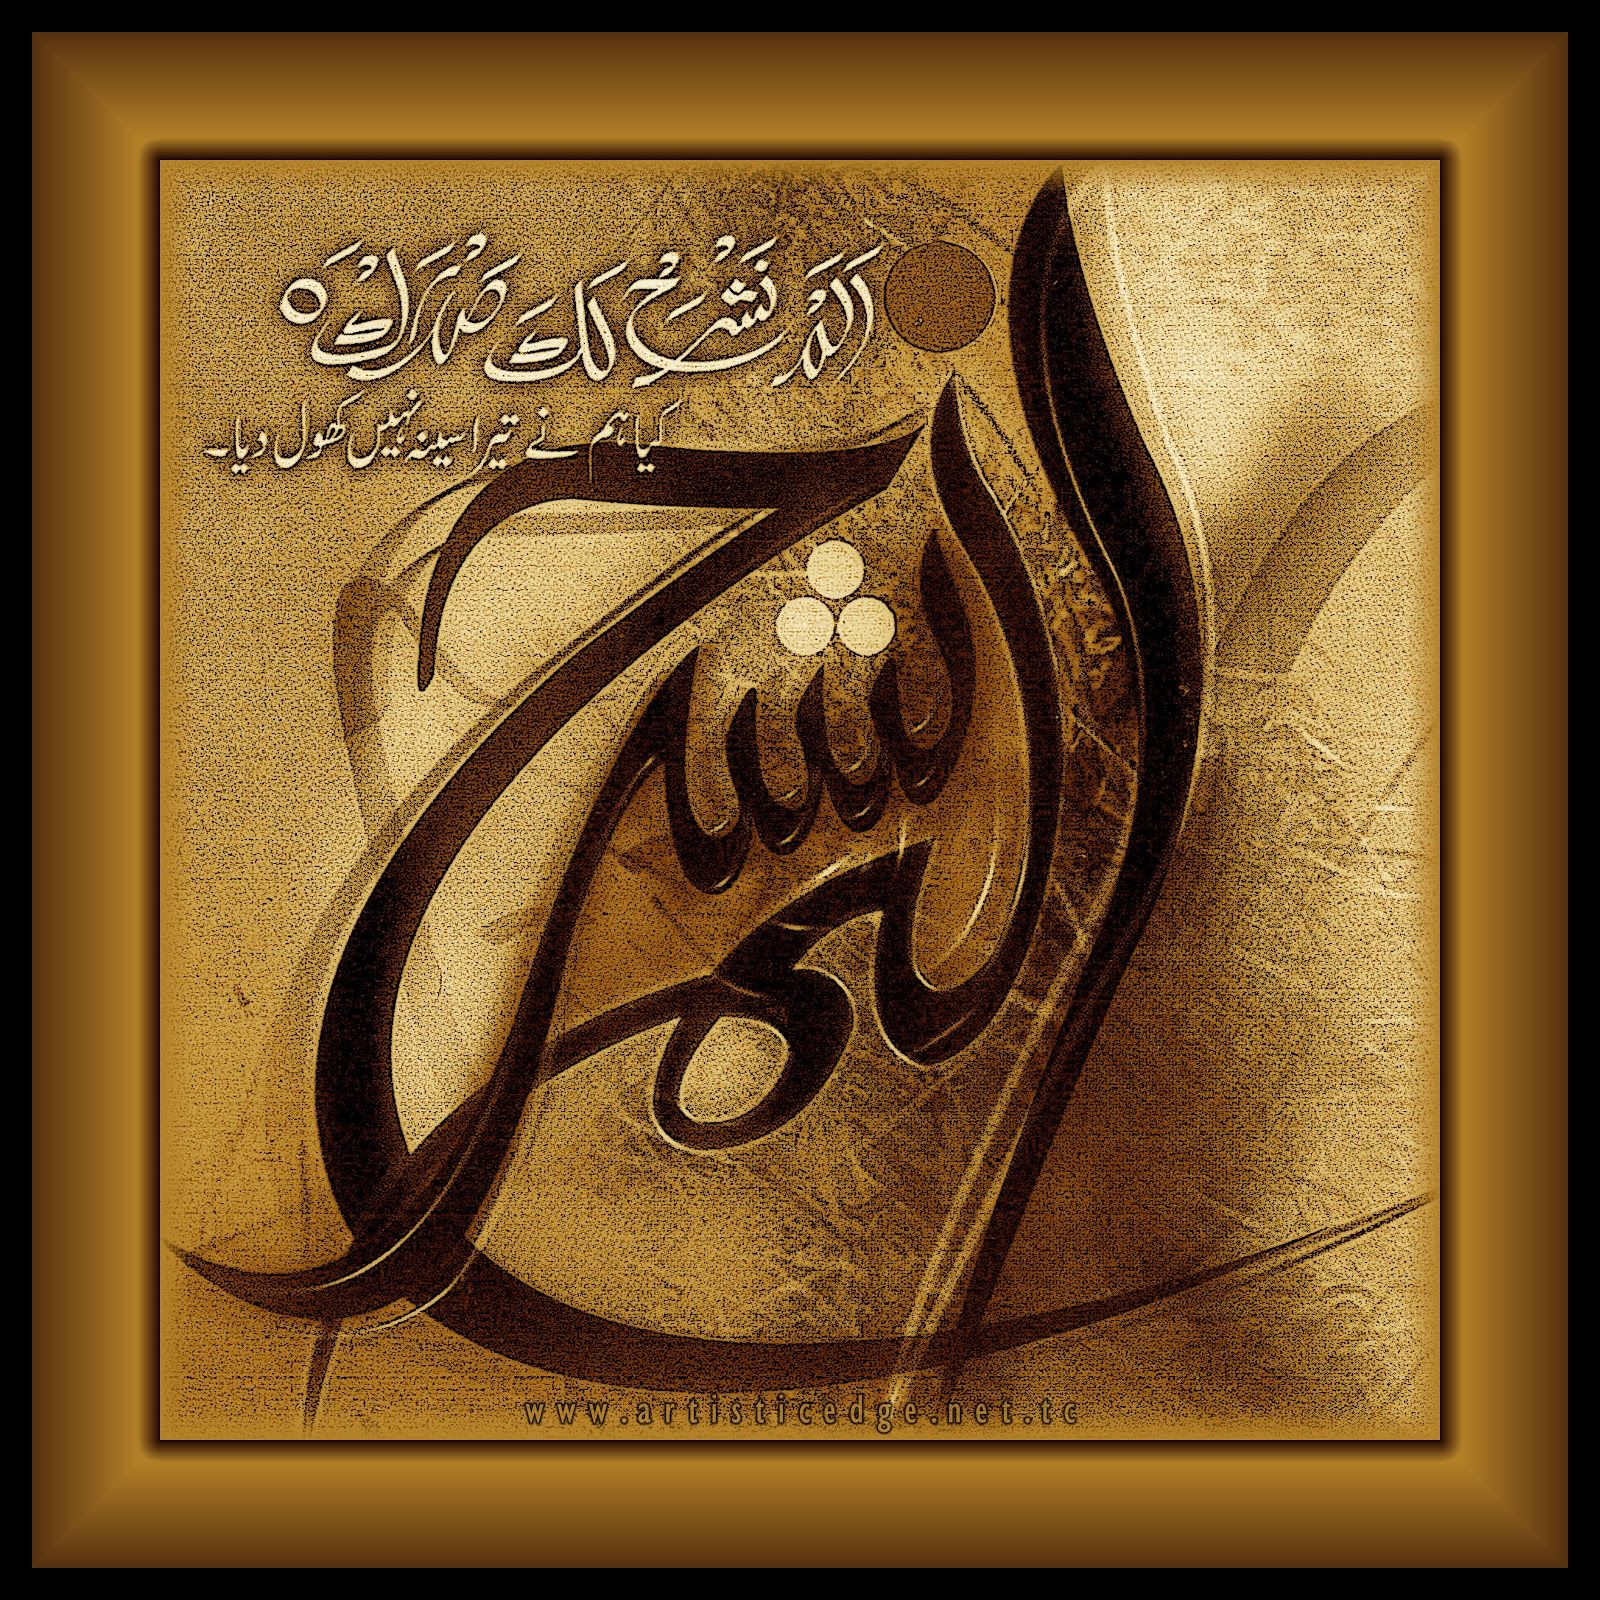 Alam nashra laka sadrak arabian islamic collections Calligraphy ayat